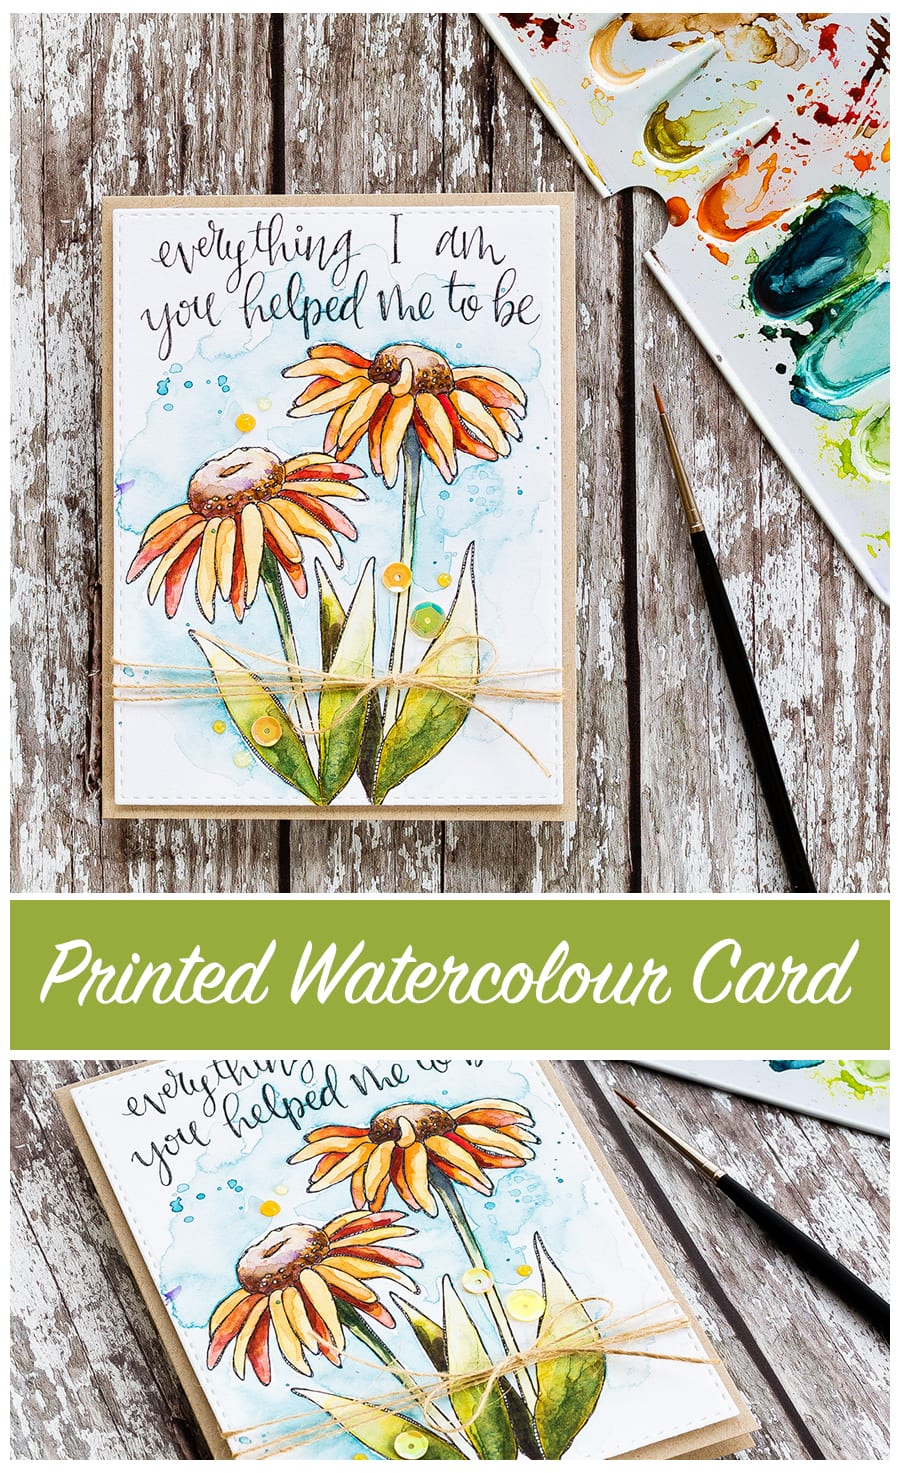 Printed watercolour card by Debby Hughes. Find out more about this card by clicking on the following link: http://limedoodledesign.com/2017/04/printed-watercolour-card/